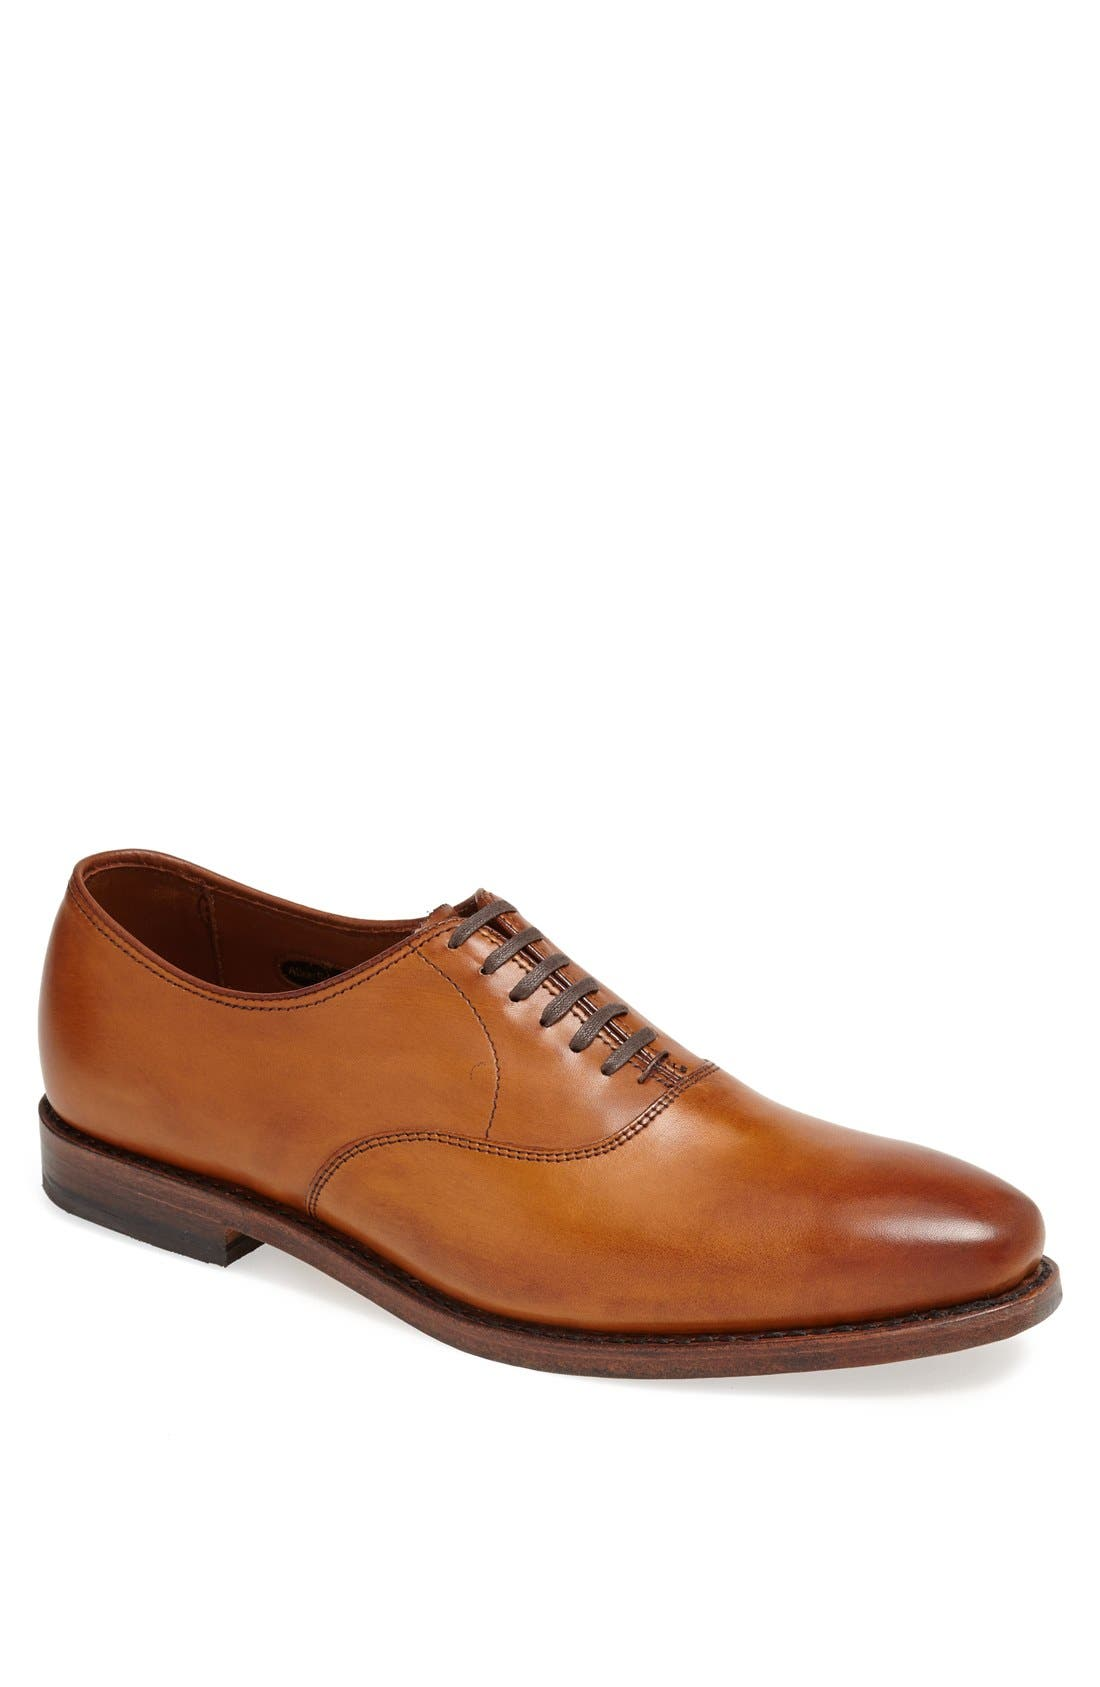 ALLEN EDMONDS, Carlyle Plain Toe Oxford, Main thumbnail 1, color, WALNUT LEATHER